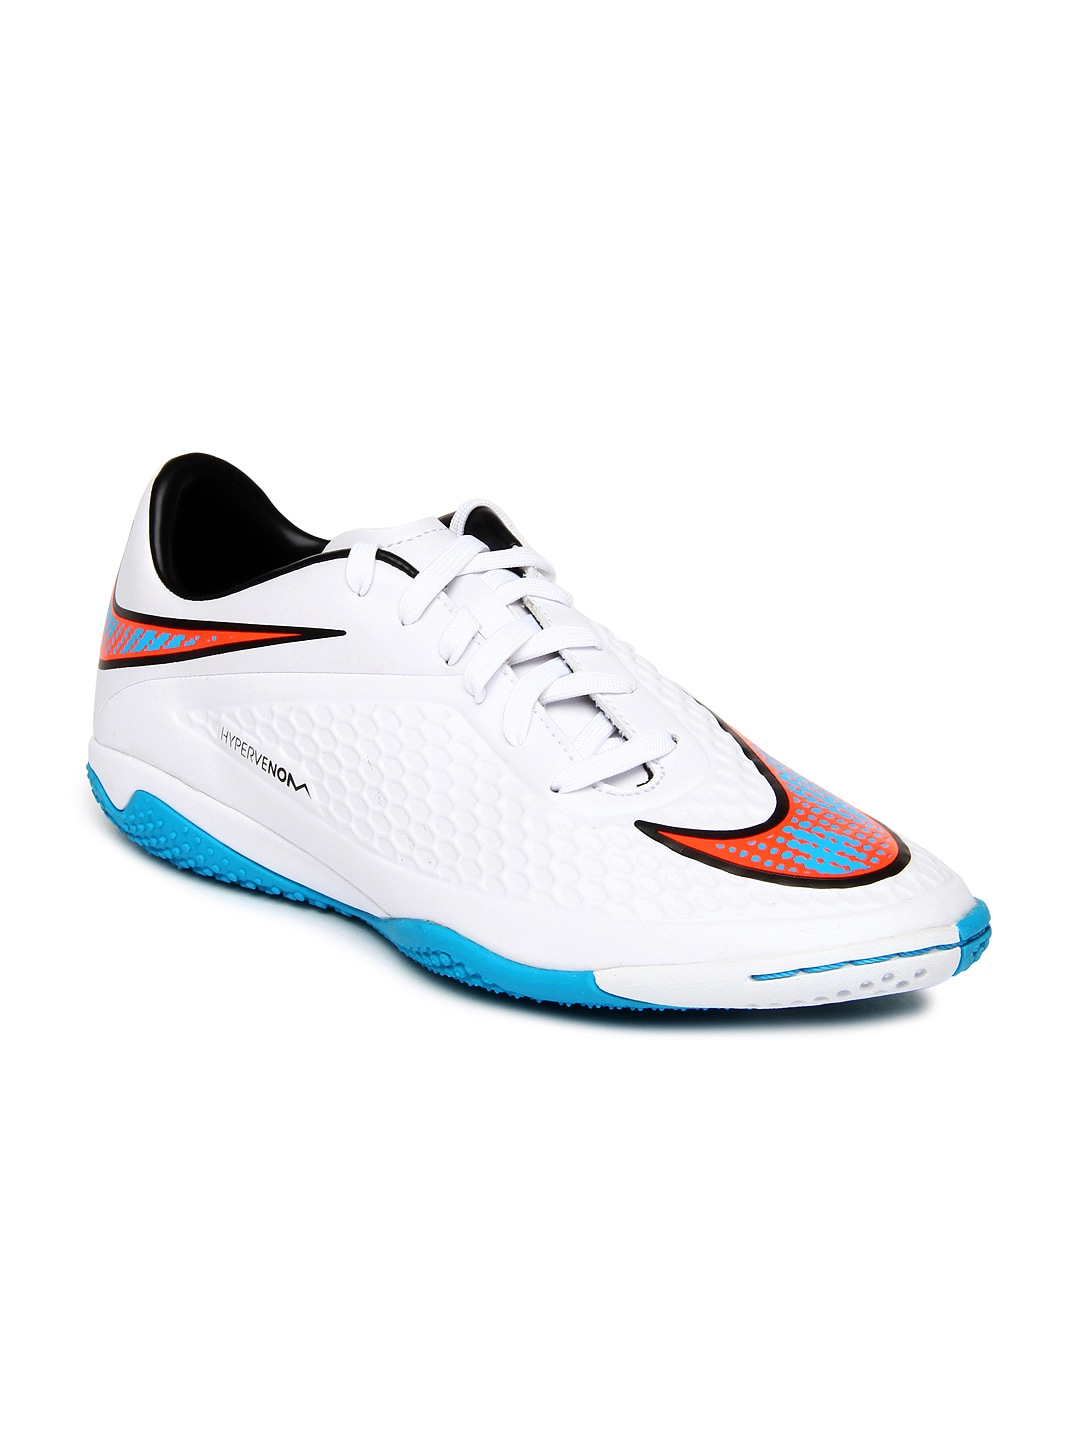 Shoes for men online   Best place to buy nike shoes online